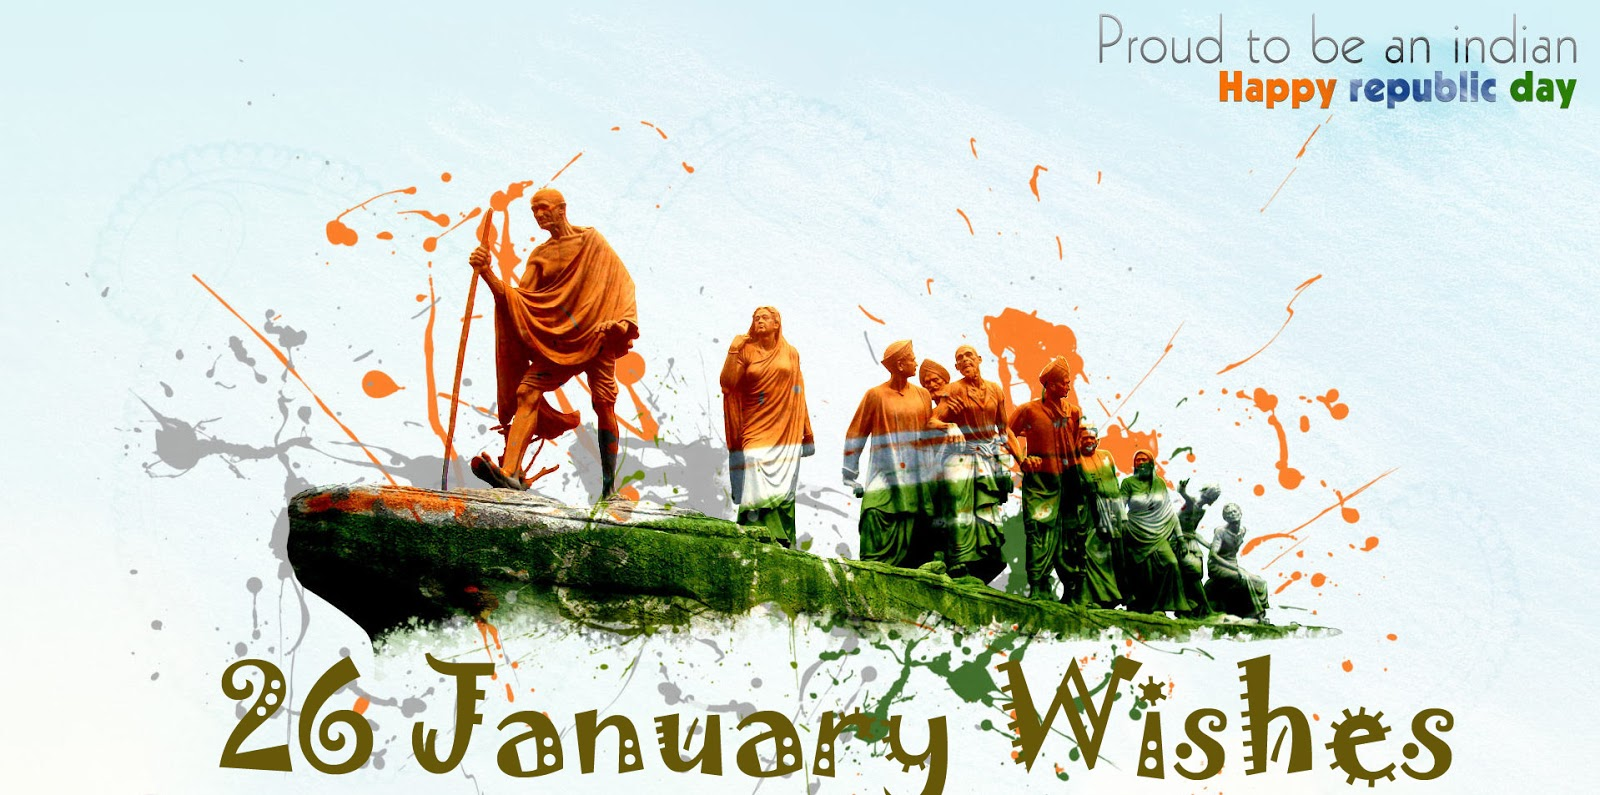 Republic Day Images for Whatsapp DP, Profile Wallpapers